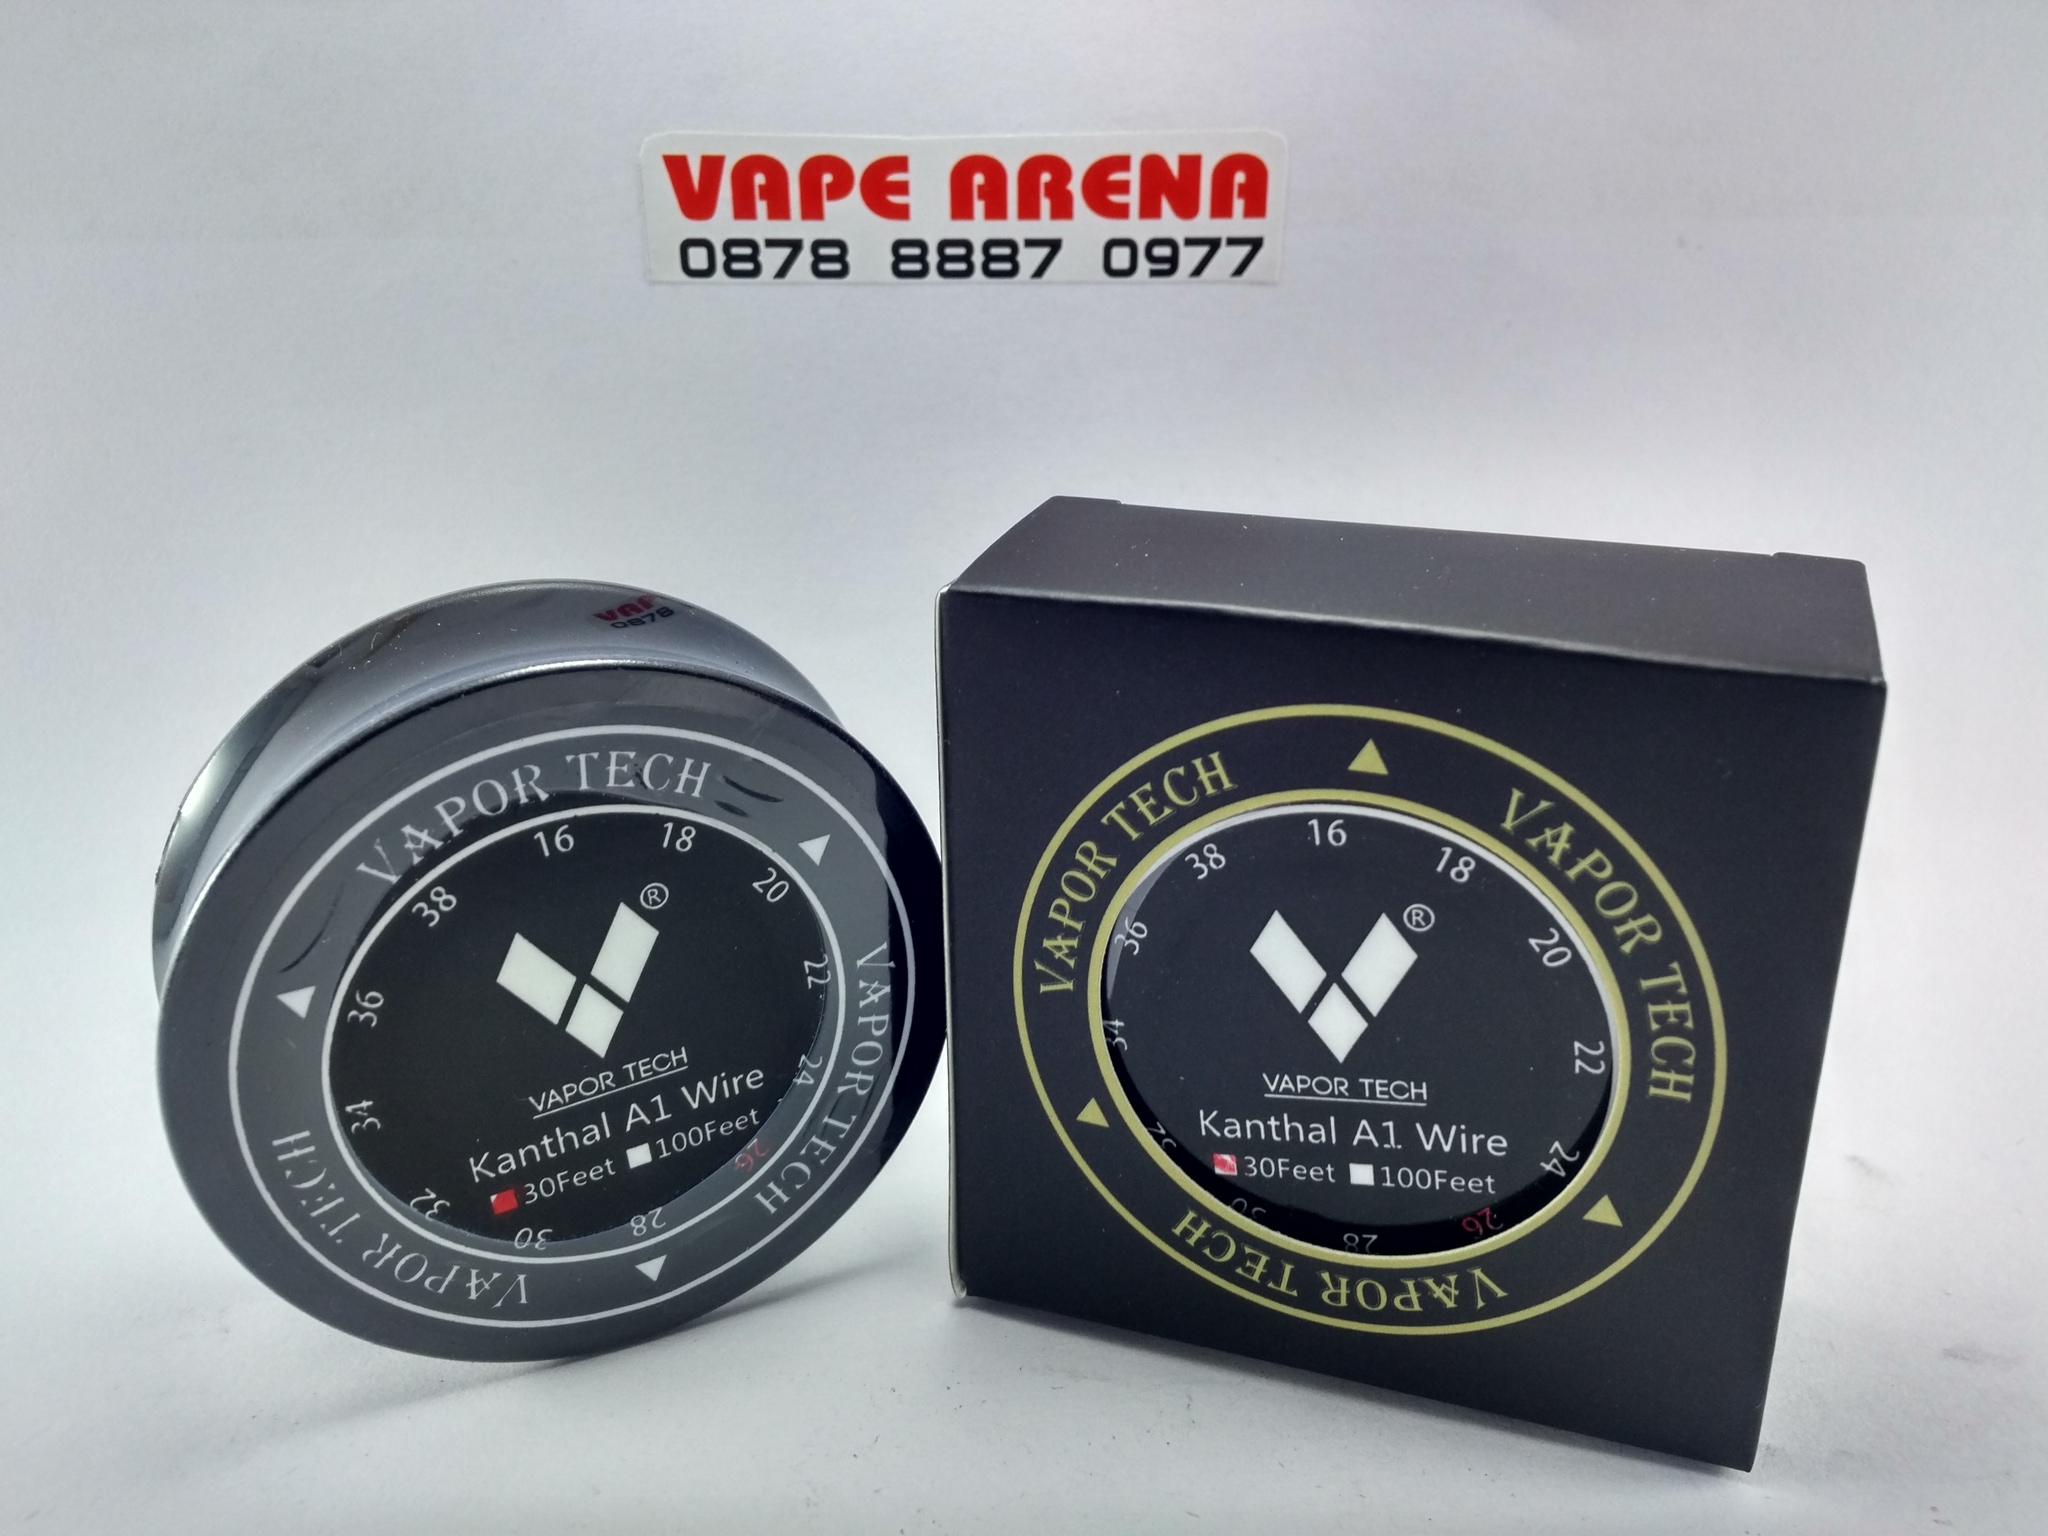 Kawat Wire Vapor Premium Nichrome 22 24 26 28 By Ud 100percent Geekvape Awg Geek Vape  Grosir Jual Kanthal A1 30feet Tech Authentic